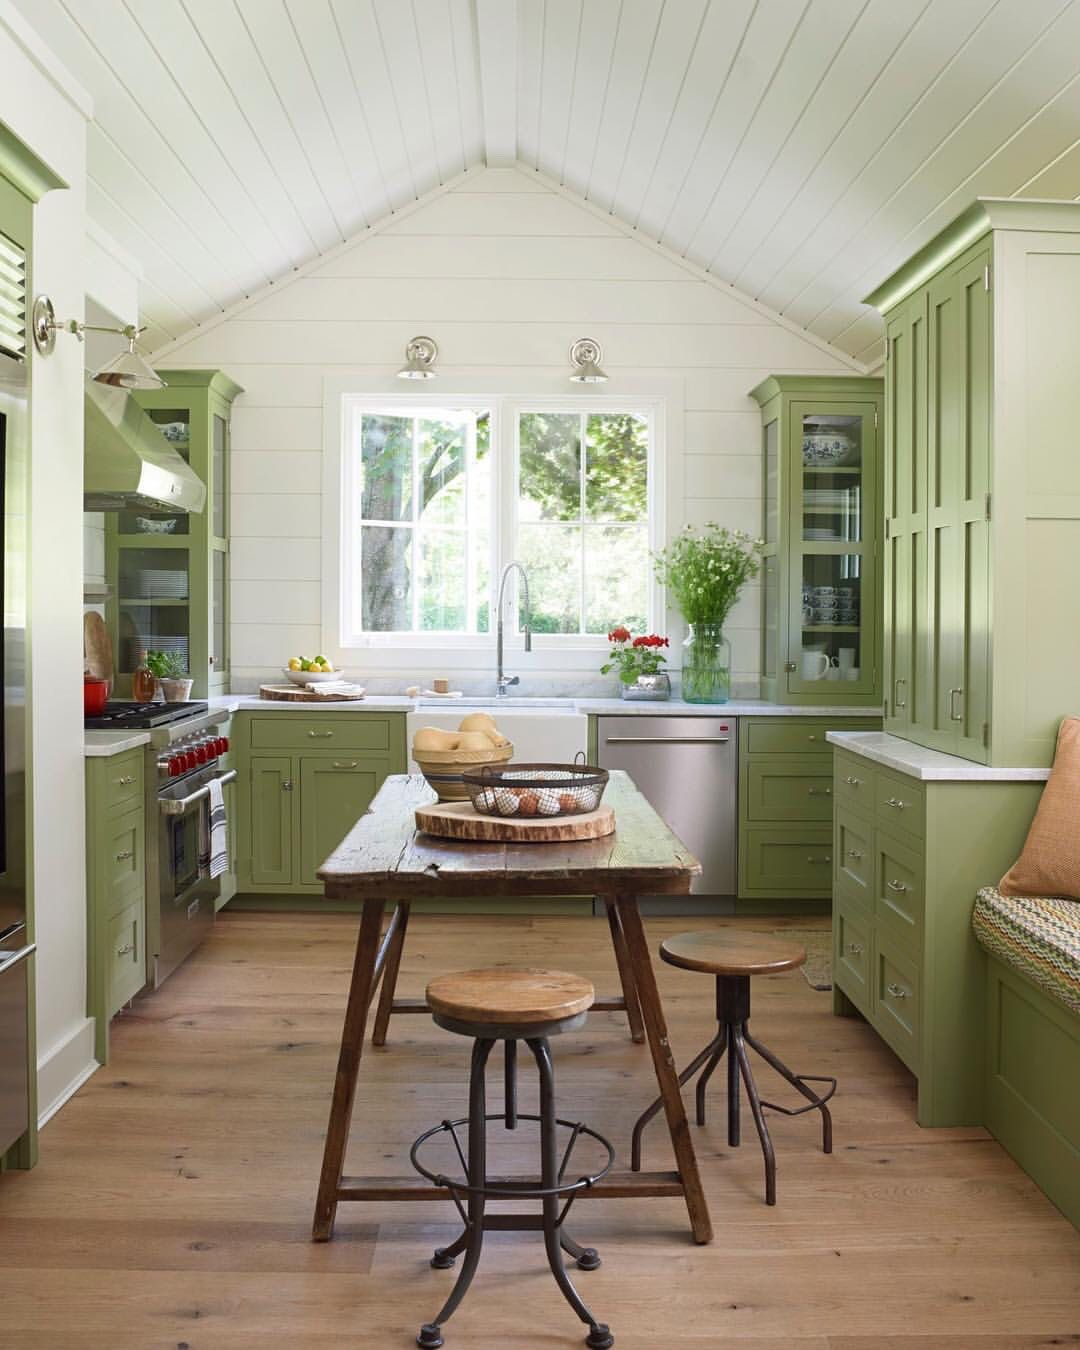 Table In The Middle Of The Kitchen Instead Of An Island Green Kitchen Cabinets Country Kitchen Kitchen Design